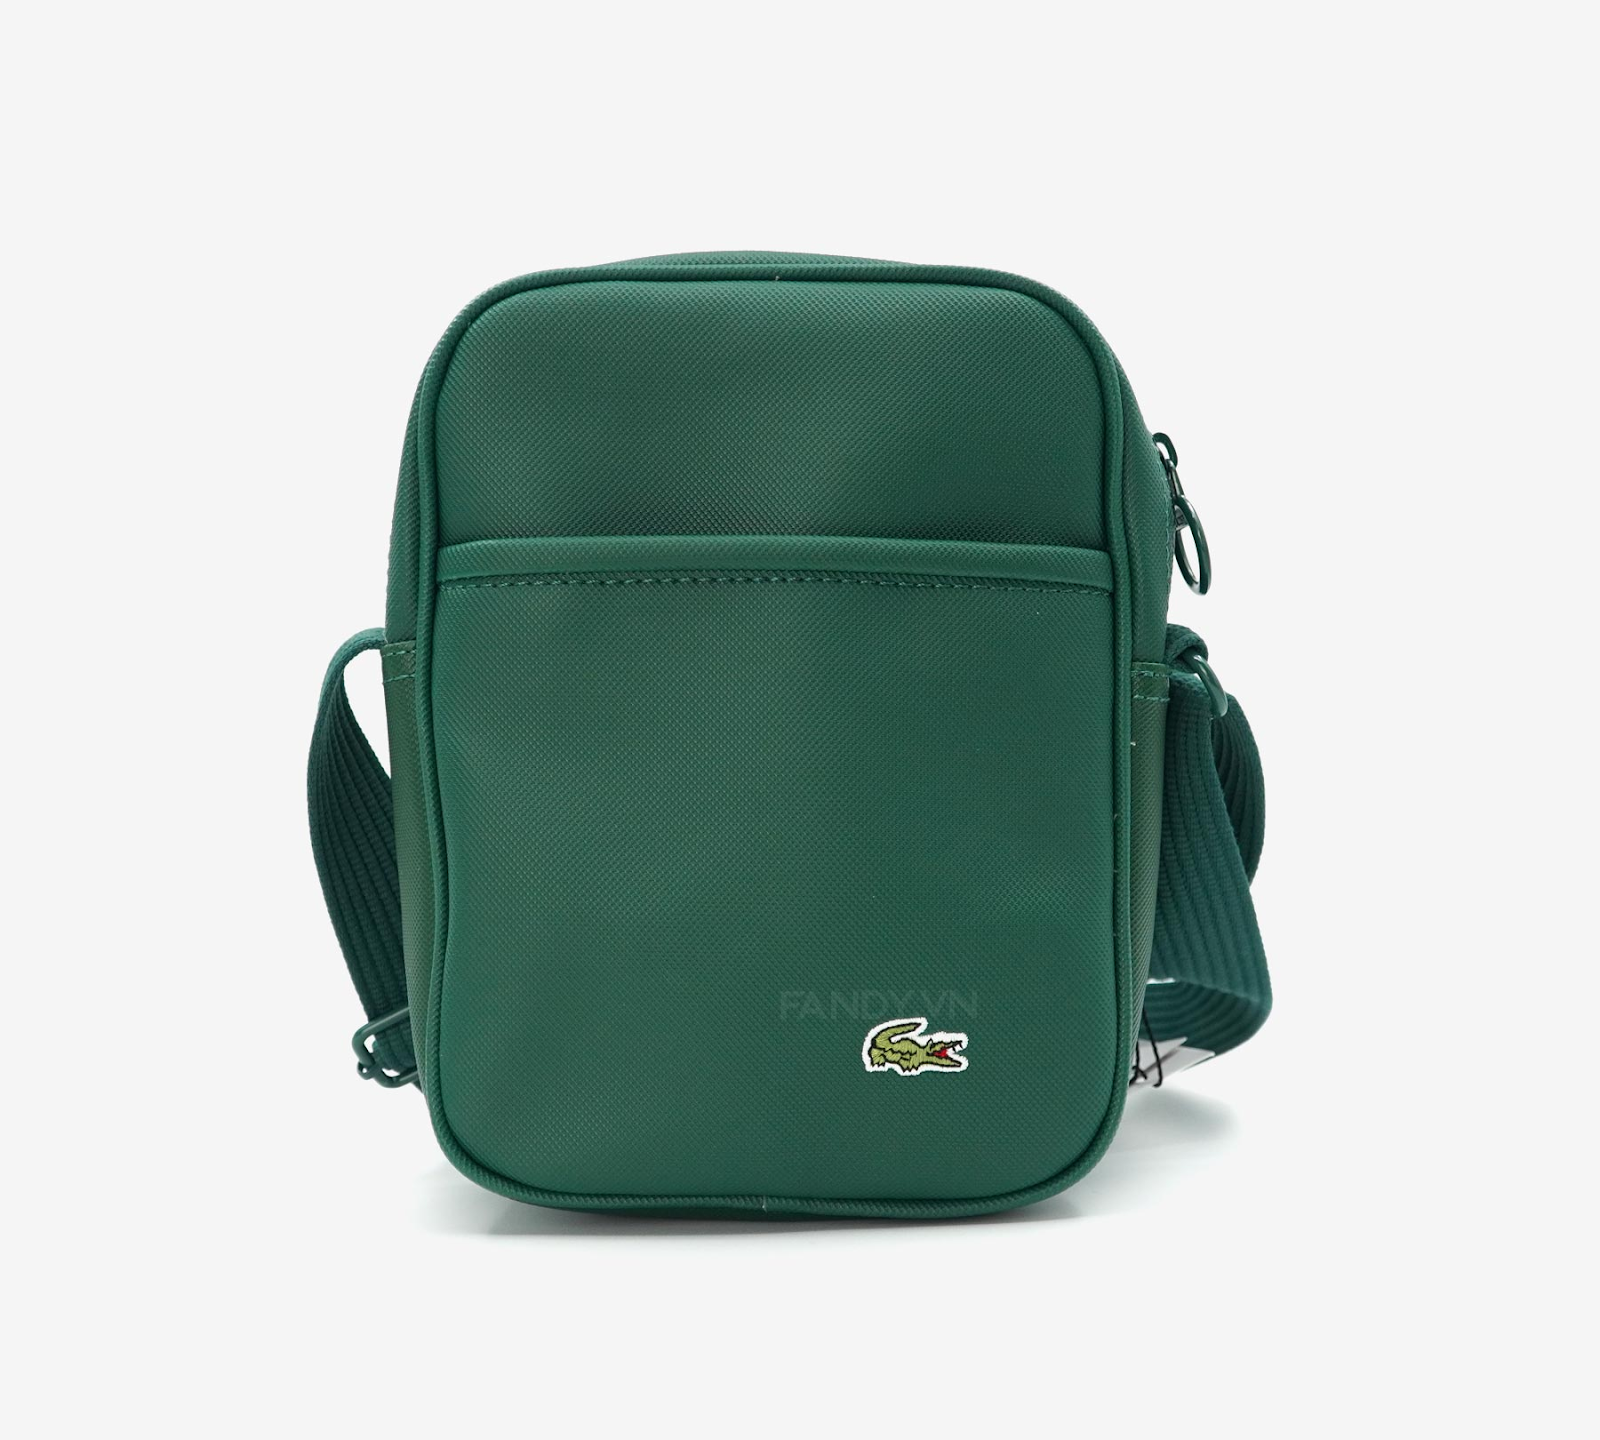 TÚI LACOSTE NEOCROC CANVAS GREEN